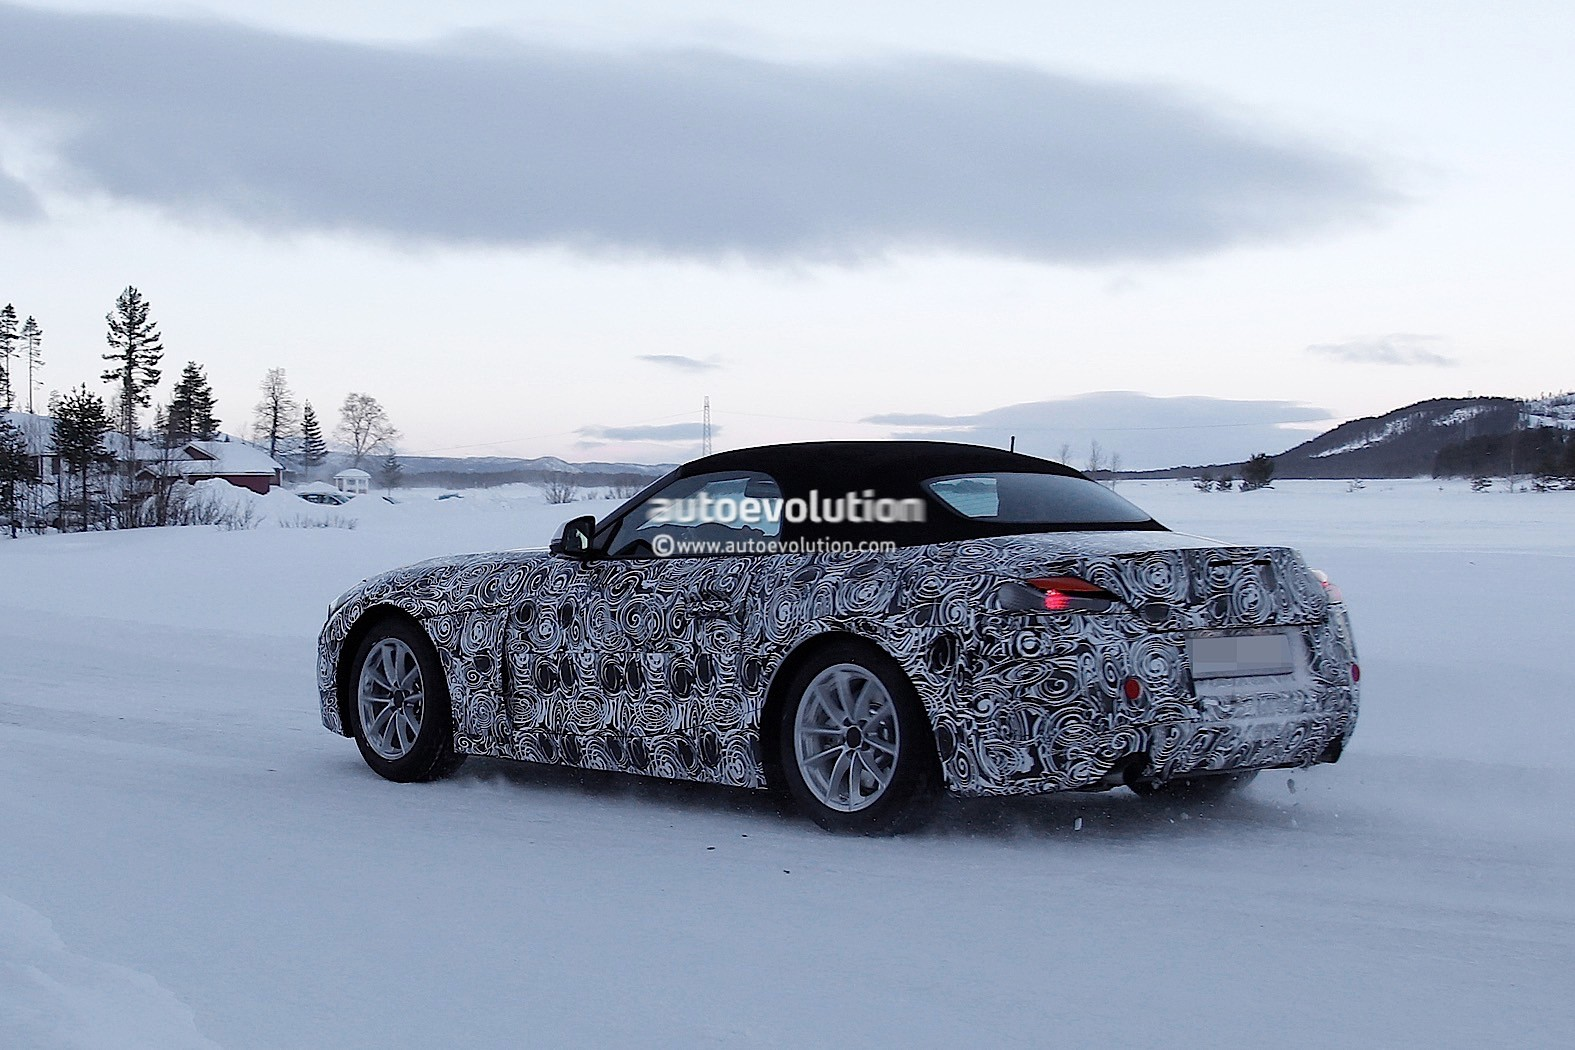 2018 Bmw Z5 Spyshots Show Production Rear End For The